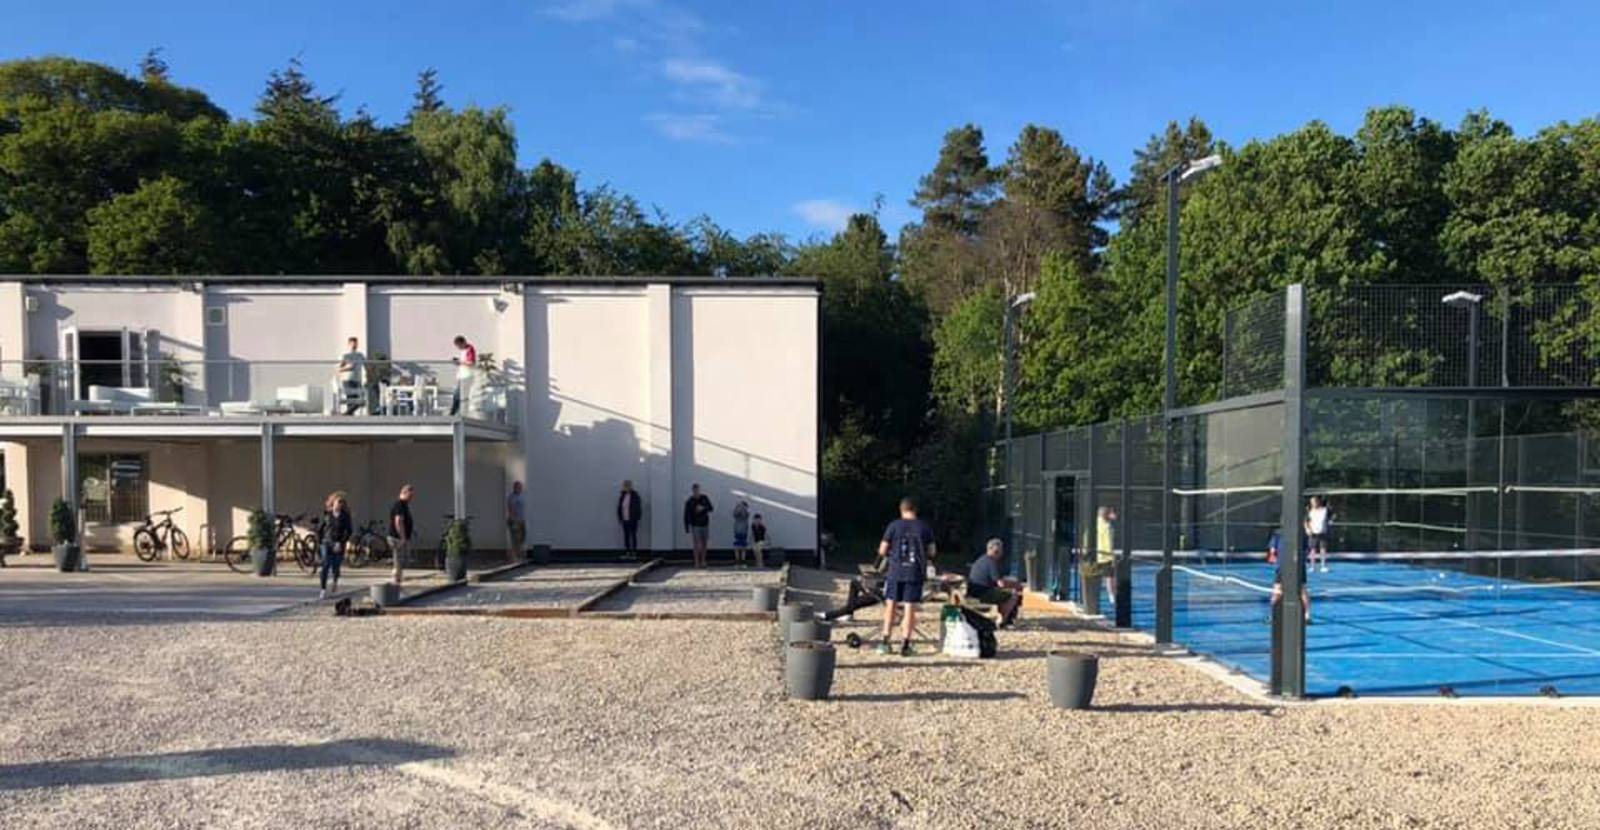 New Padel Tech court in play